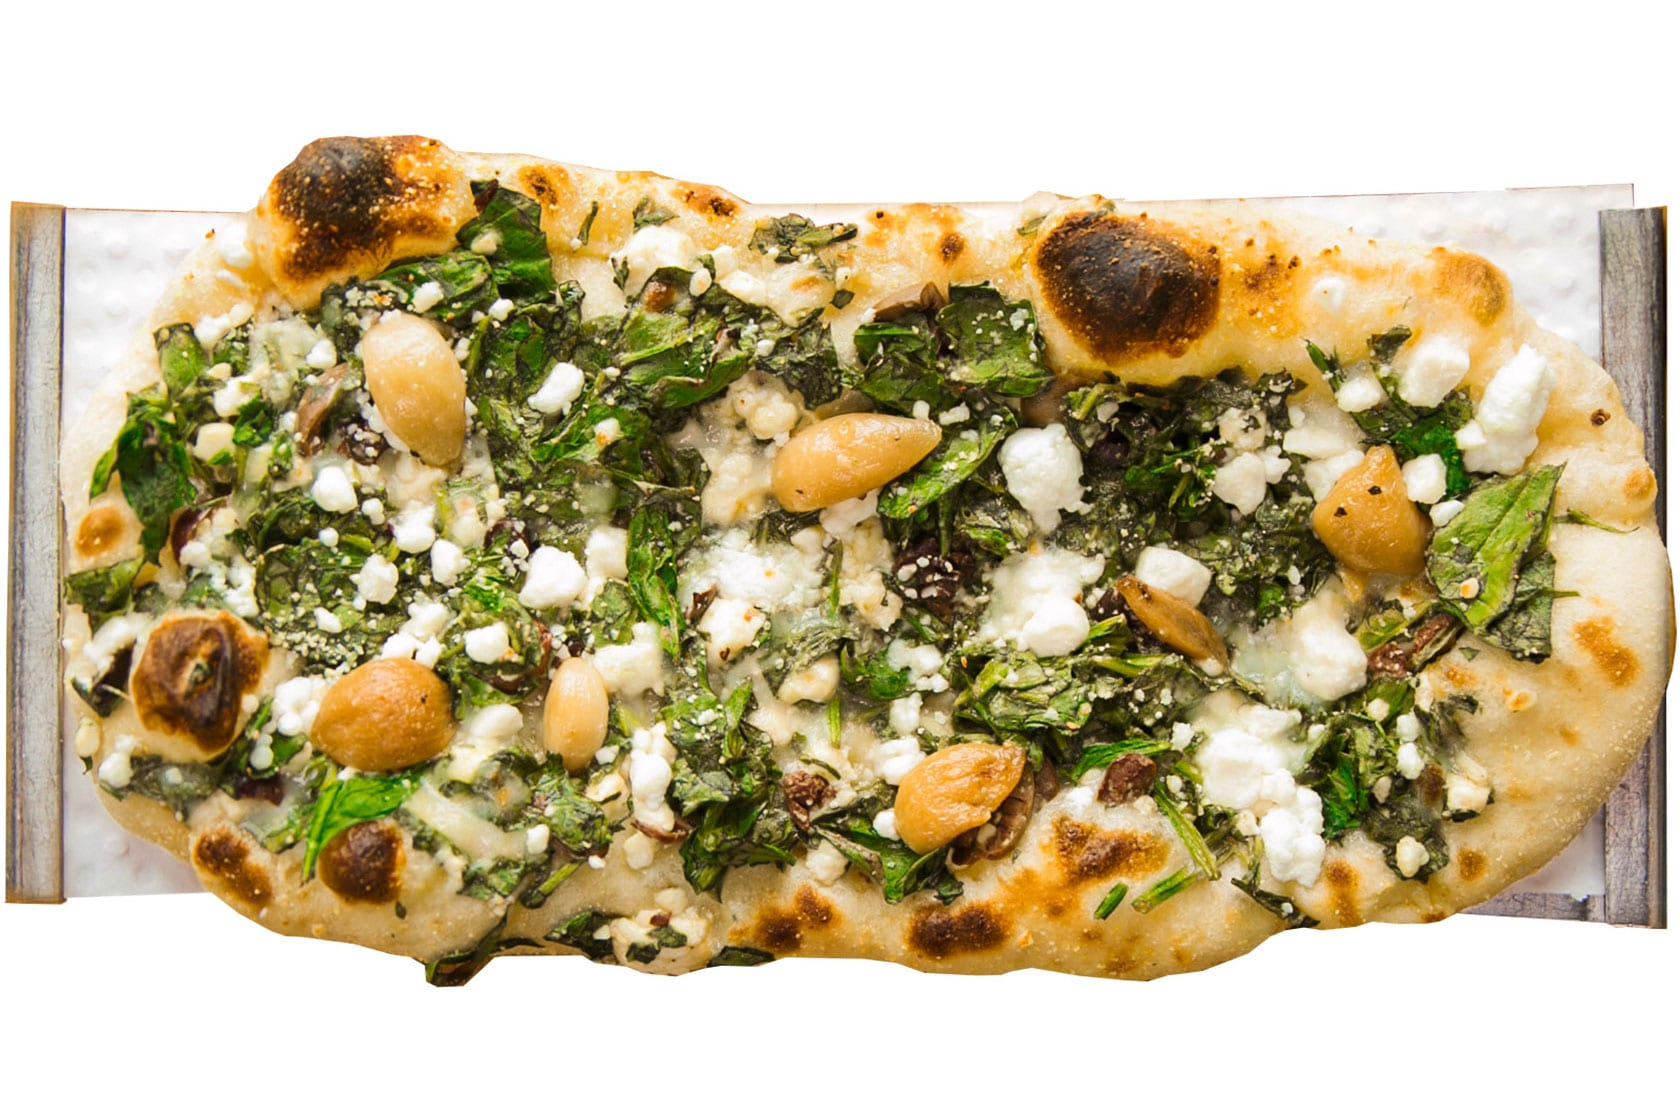 Crushed Red Mona Lisa Urban Crafted Pizza